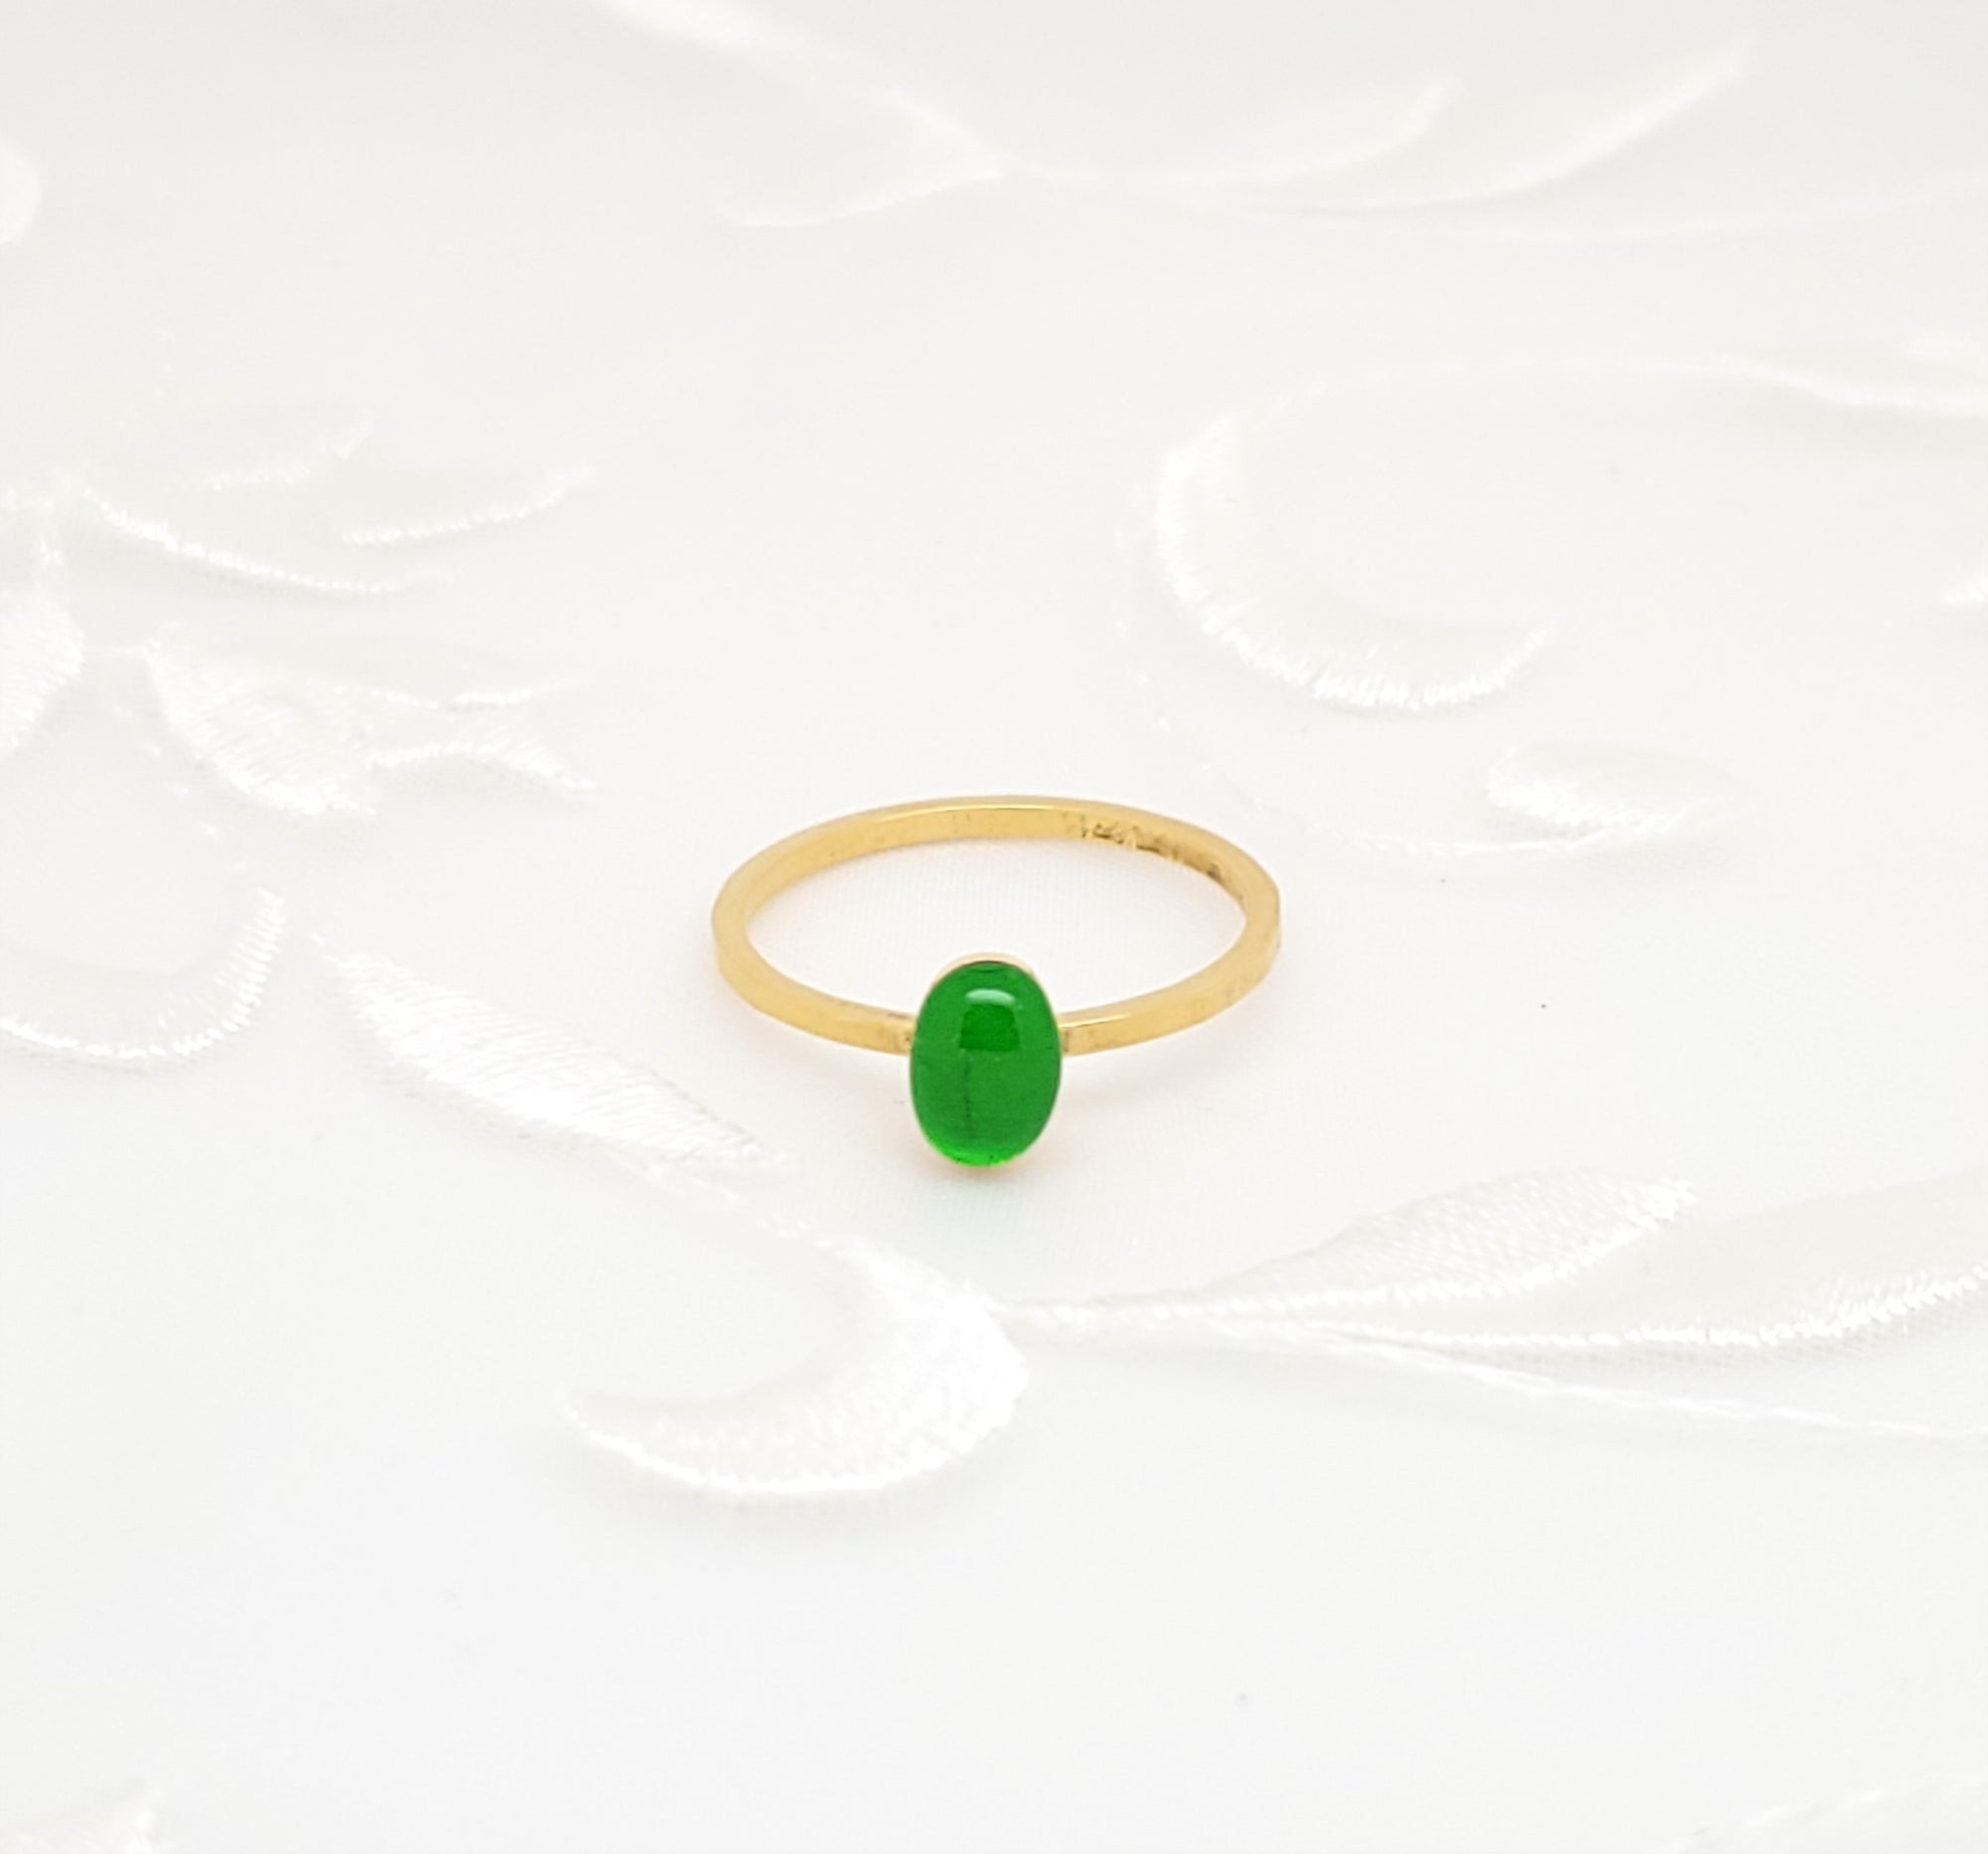 Antique Gold Oval Ring with Transparent Grass Green Resin